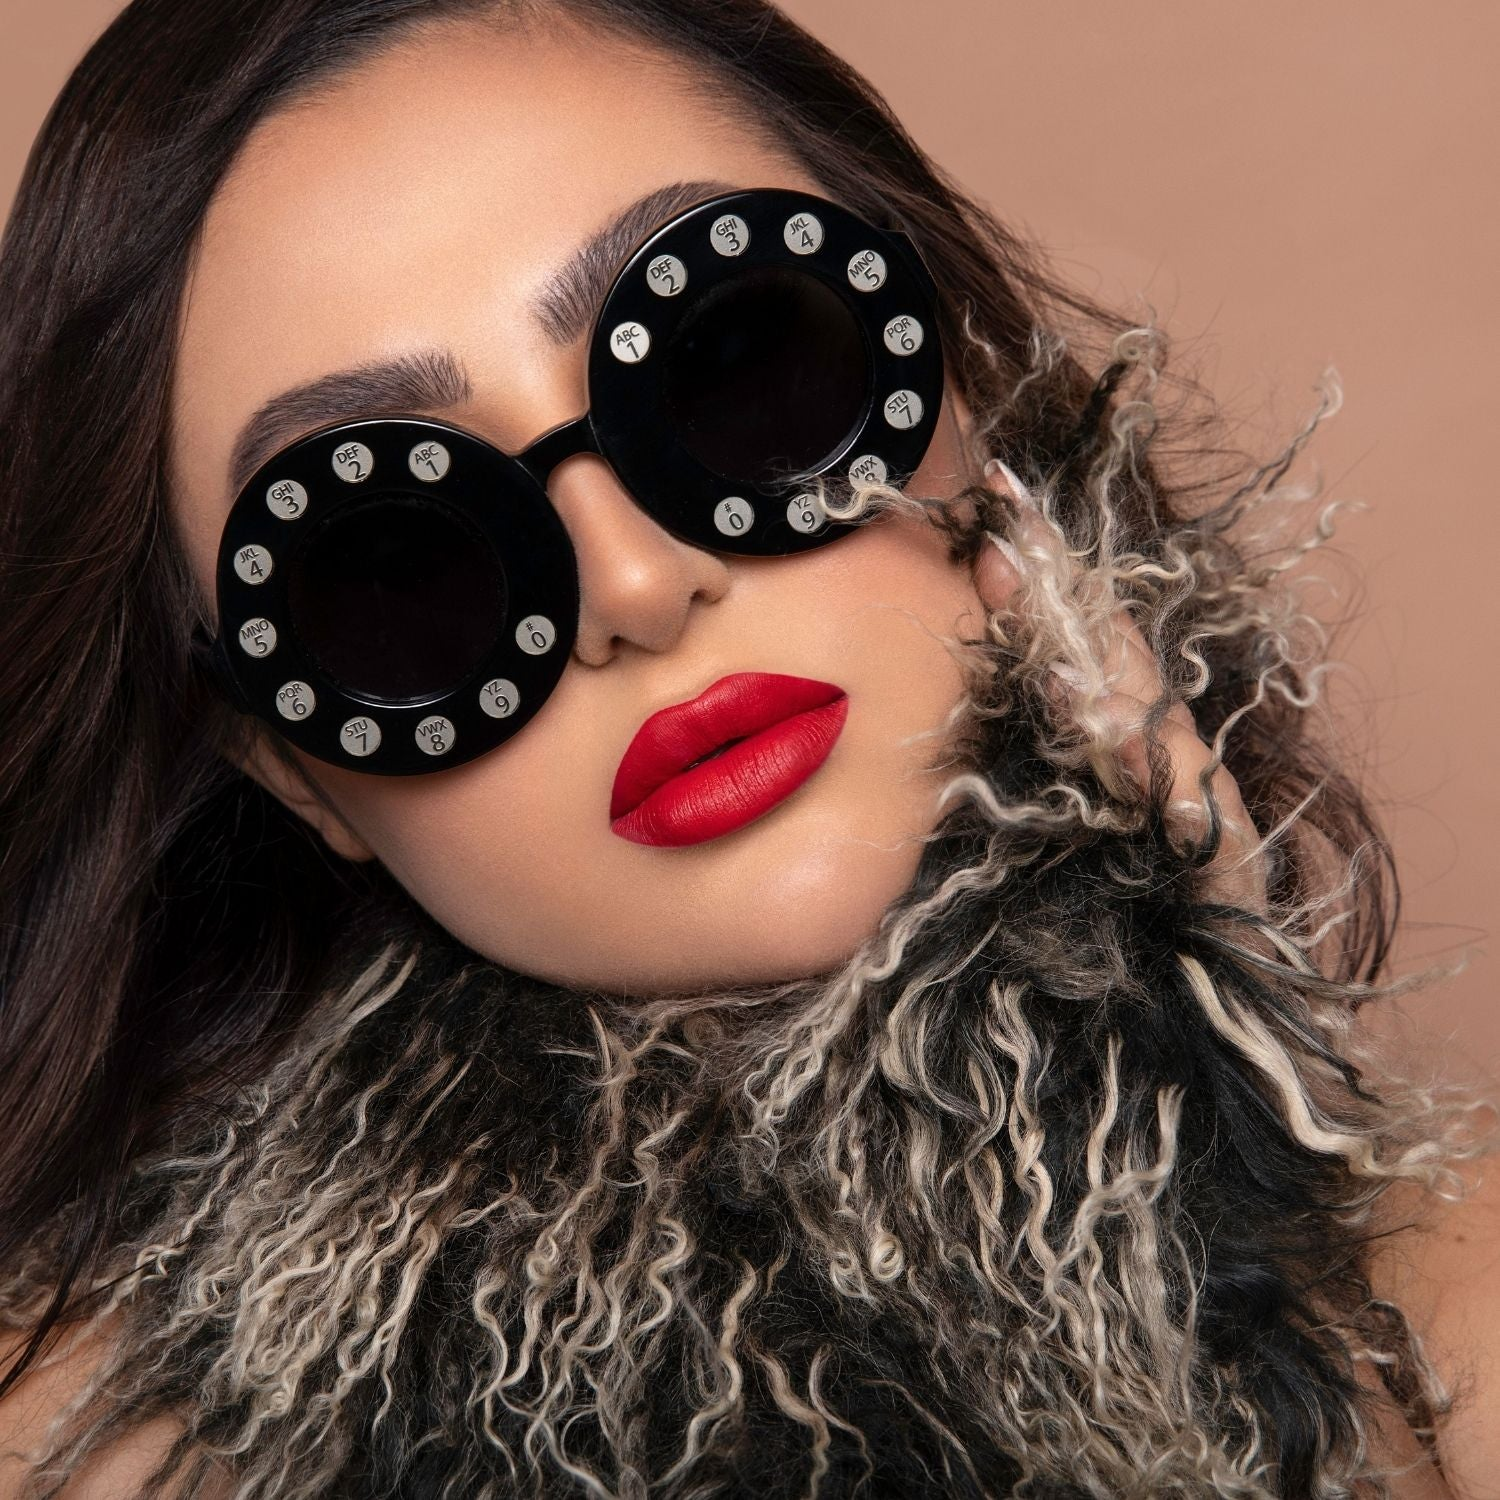 Red lip model funky scarf and sunglasses